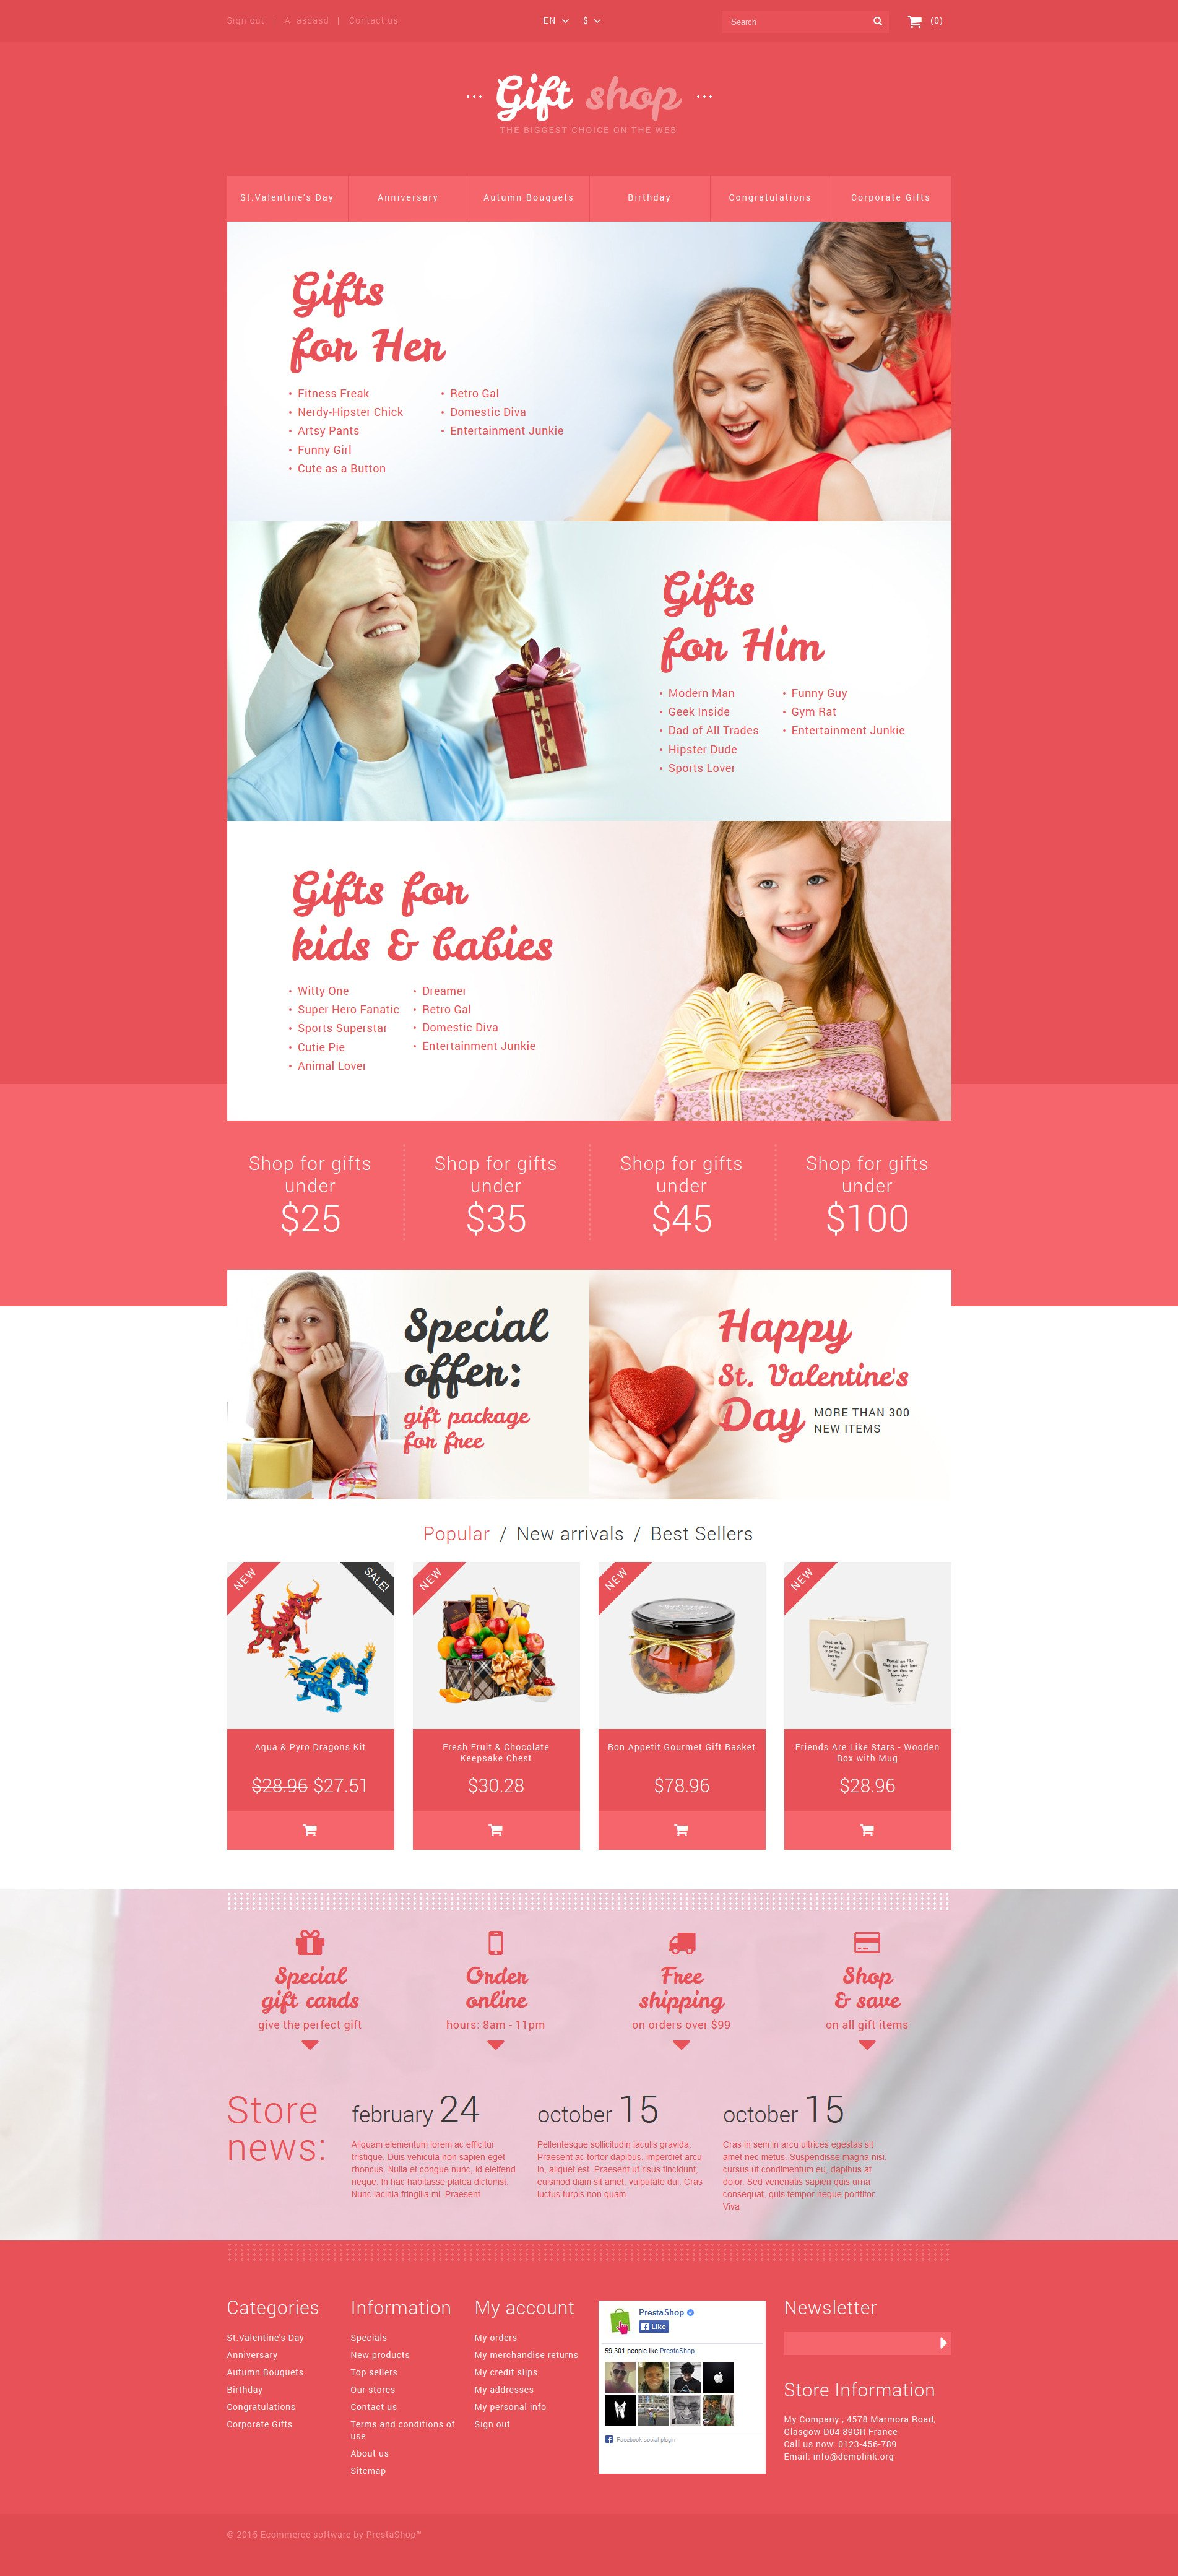 The Gift Store PrestaShop Design 53171, one of the best PrestaShop themes of its kind (gifts, most popular), also known as gift store PrestaShop template, online presents PrestaShop template, shop PrestaShop template, toys PrestaShop template, games PrestaShop template, ties PrestaShop template, snowmen PrestaShop template, baskets PrestaShop template, candle PrestaShop template, accessory PrestaShop template, books PrestaShop template, media PrestaShop template, frame PrestaShop template, furniture PrestaShop template, cards PrestaShop template, clothes PrestaShop template, socks PrestaShop template, apparel PrestaShop template, electronics PrestaShop template, flowers PrestaShop template, jewelry PrestaShop template, watches PrestaShop template, animals PrestaShop template, frames PrestaShop template, delivery PrestaShop template, decoration PrestaShop template, congratulation PrestaShop template, joy PrestaShop template, collection PrestaShop template, fashion and related with gift store, online presents, shop, toys, games, ties, snowmen, baskets, candle, accessory, books, media, frame, furniture, cards, clothes, socks, apparel, electronics, flowers, jewelry, watches, animals, frames, delivery, decoration, congratulation, joy, collection, fashion, etc.